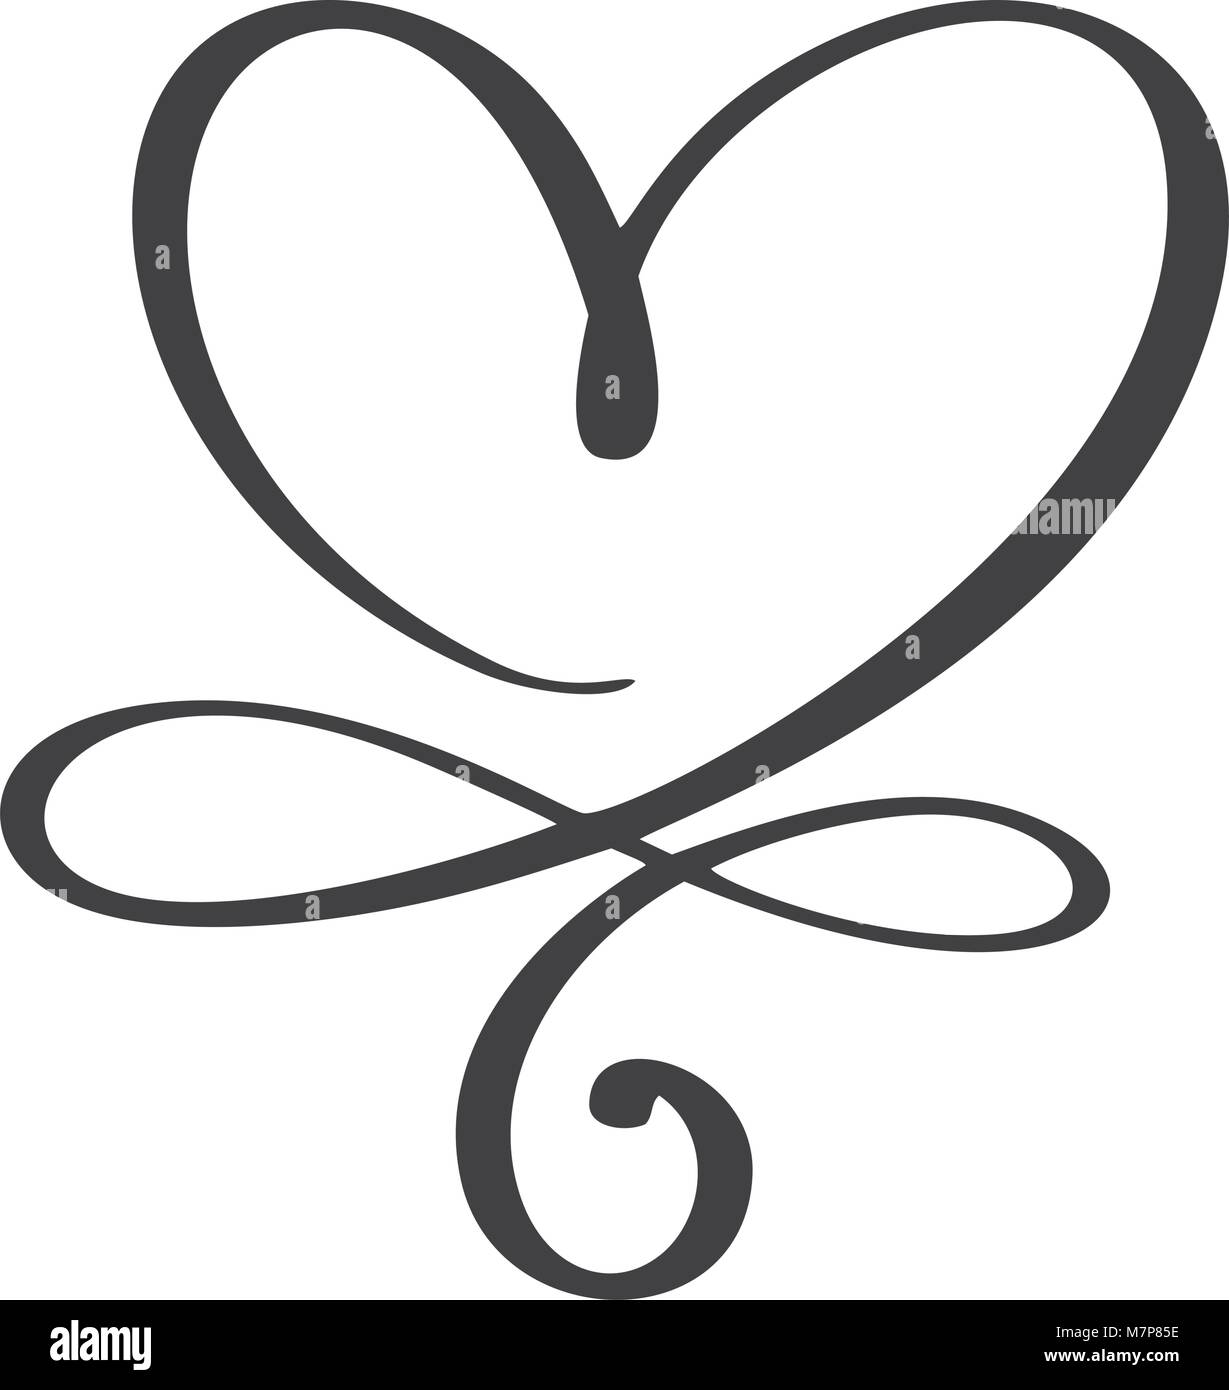 Heart love sign forever infinity romantic symbol linked join stock heart love sign forever infinity romantic symbol linked join passion and wedding template for t shirt card poster design flat element of valentine buycottarizona Gallery